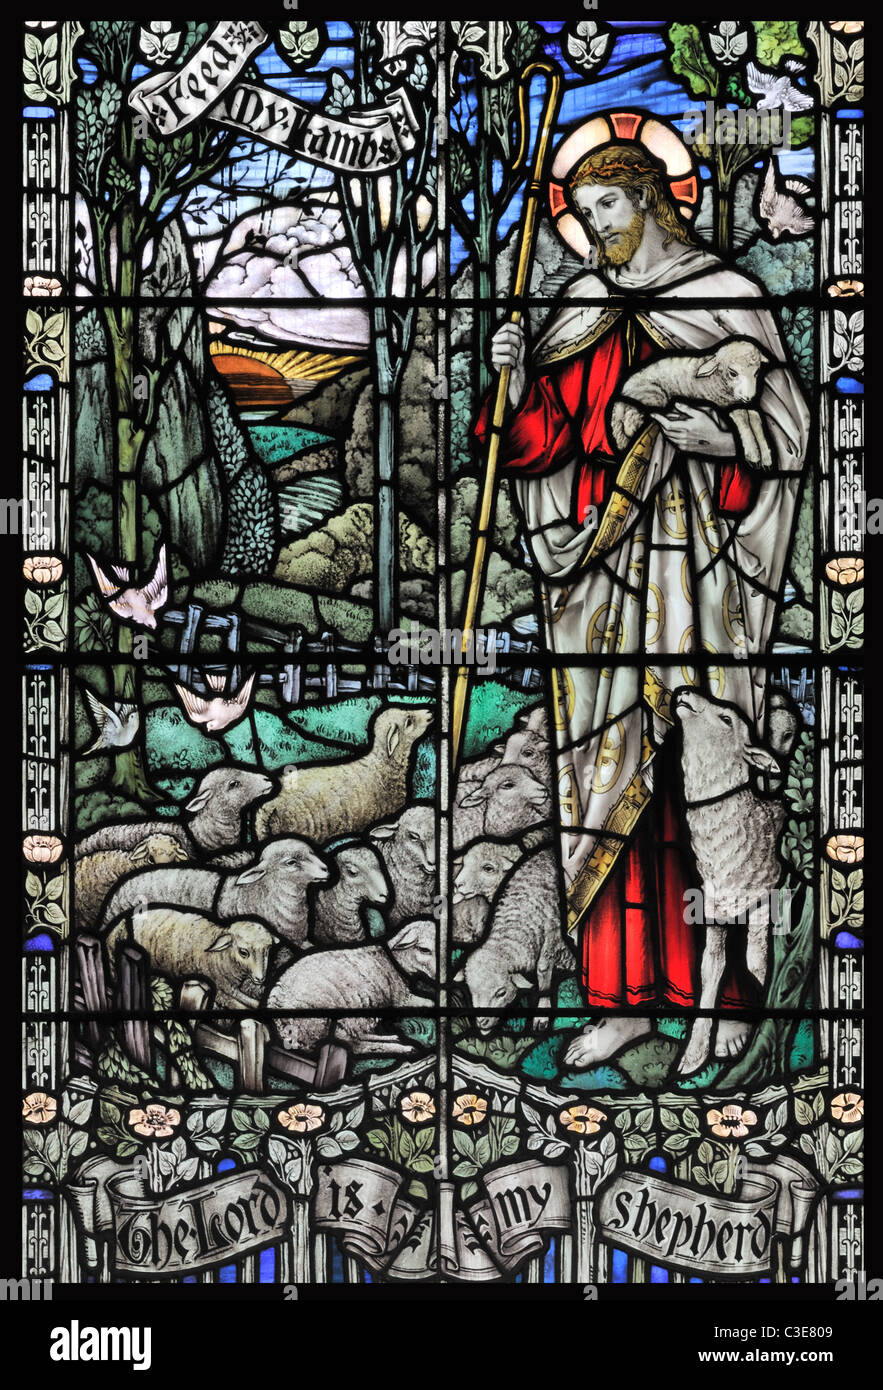 Stained glass depiction of Christ the good shepherd, St Lawrence church, Harpley, Norfolk, England - Stock Image